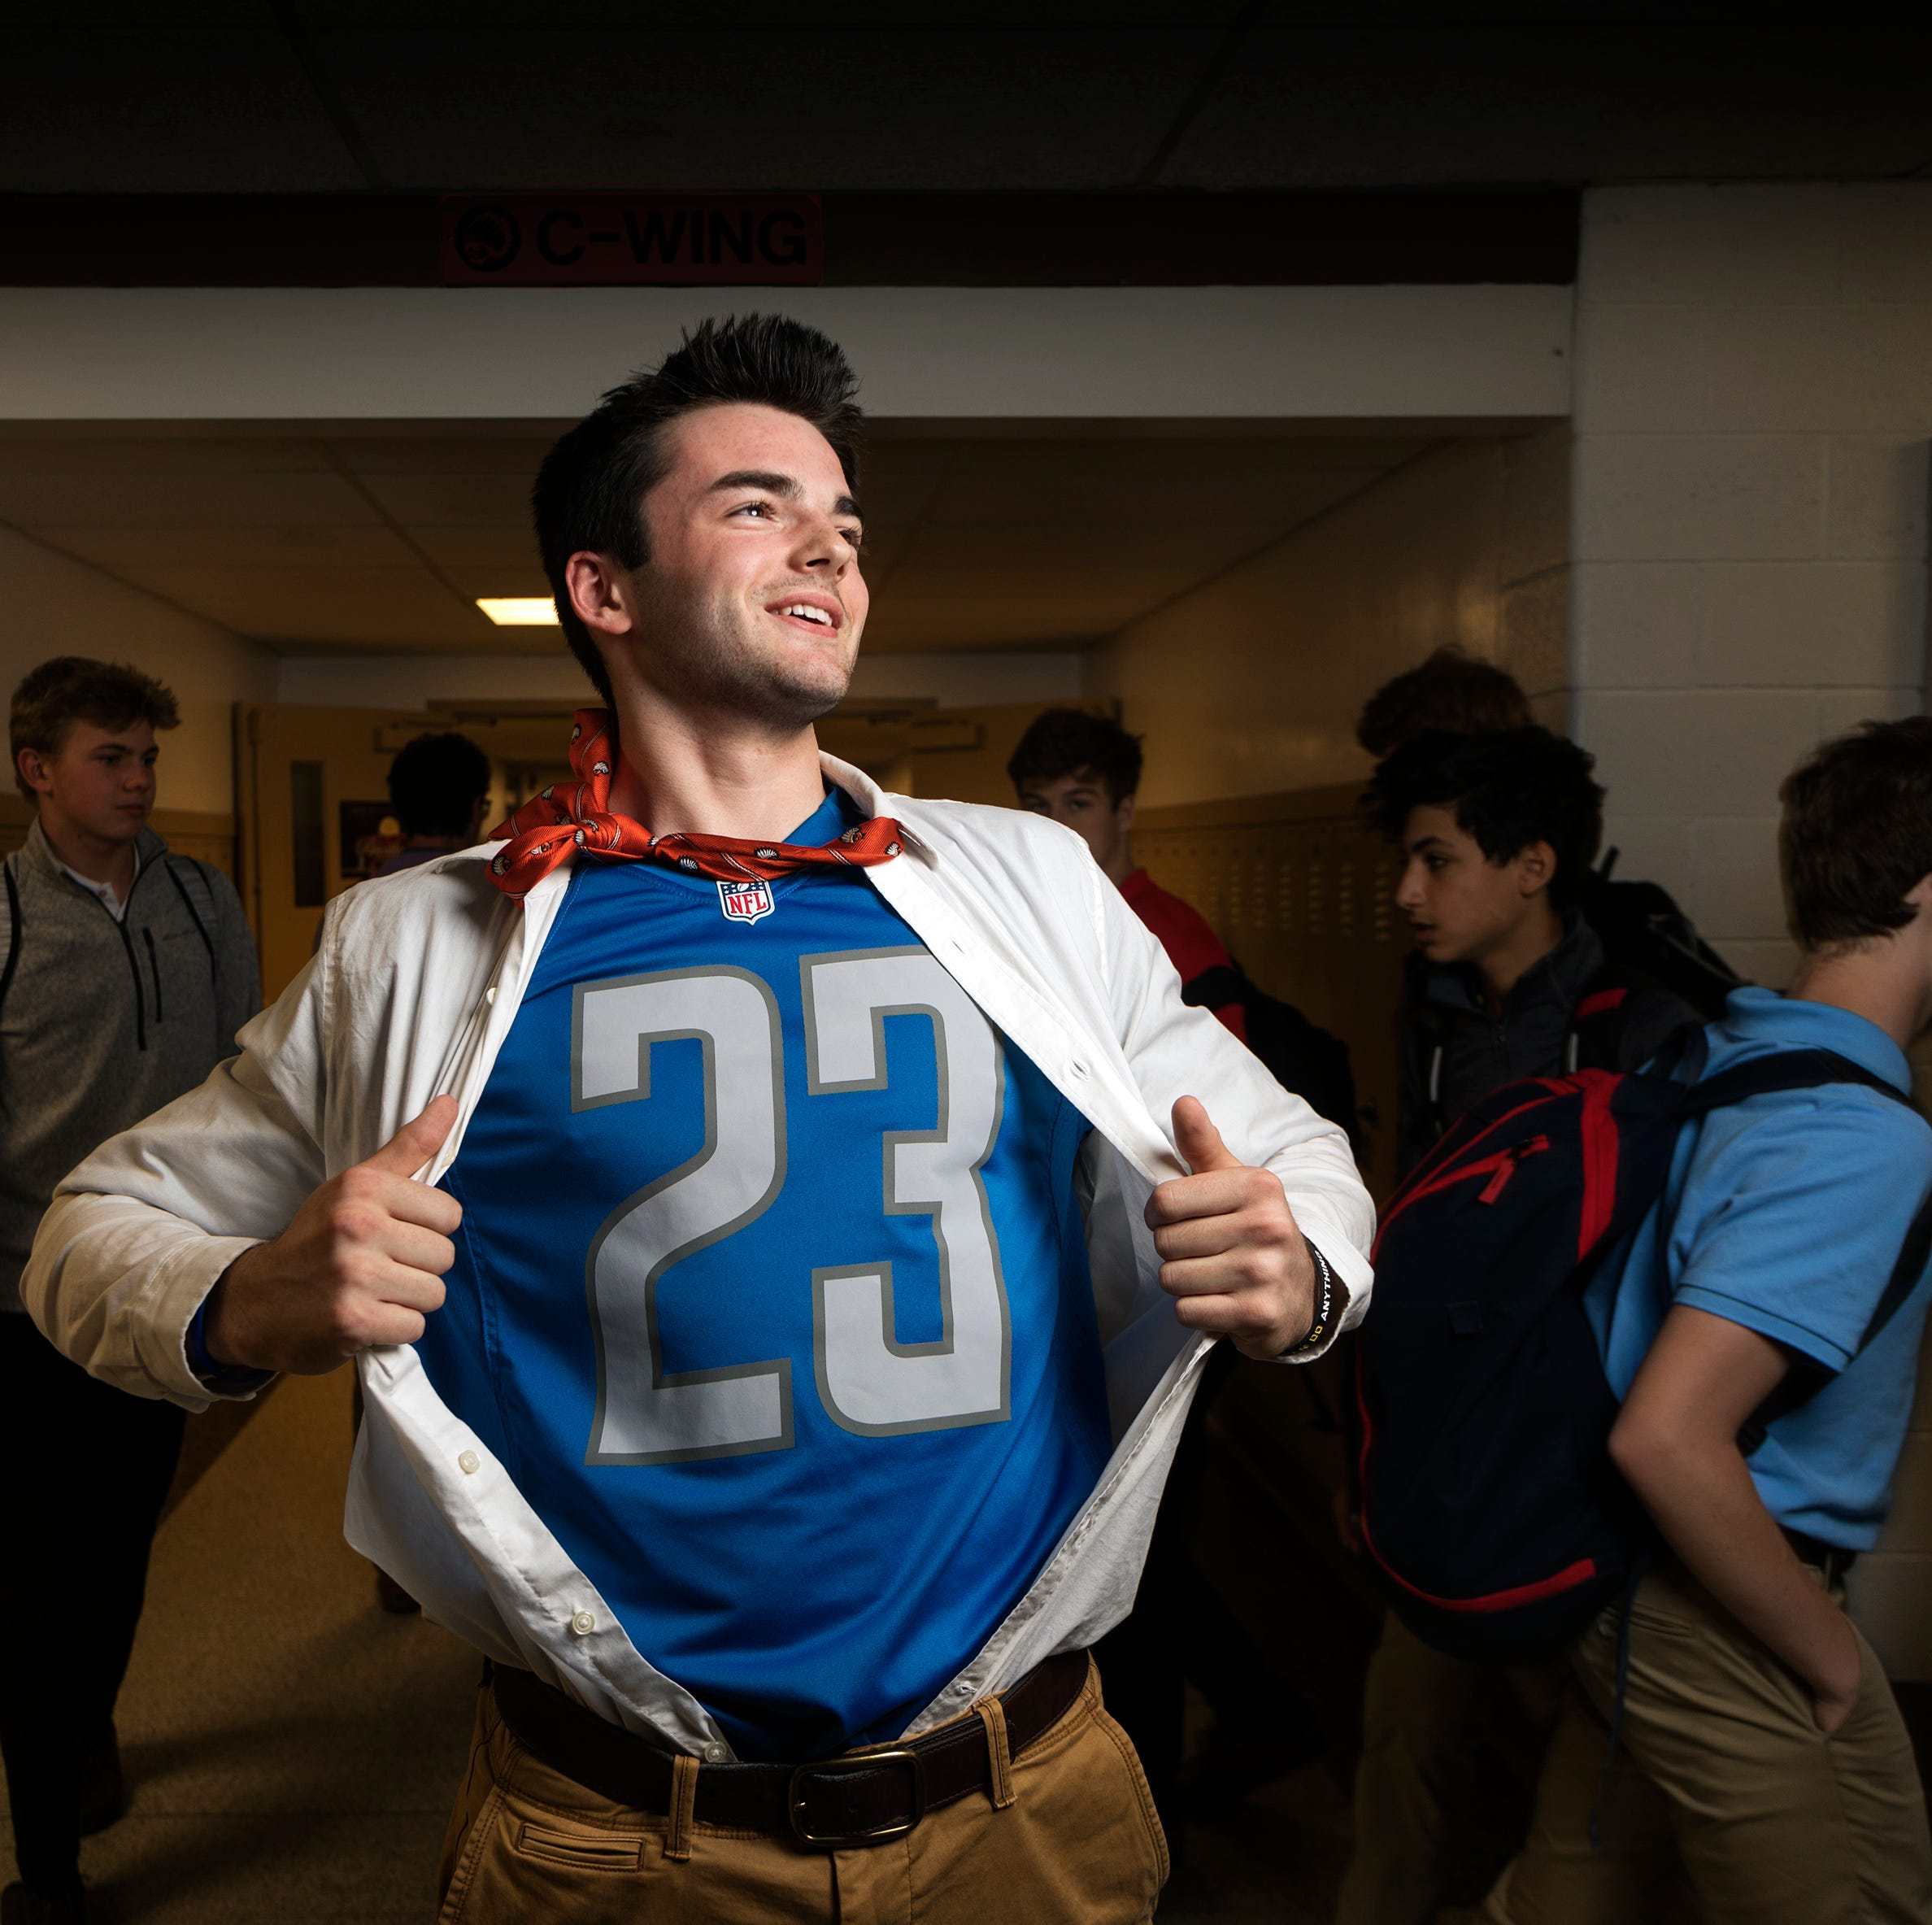 This Brother Rice teen takes Lions superfandom to new level, losses be damned